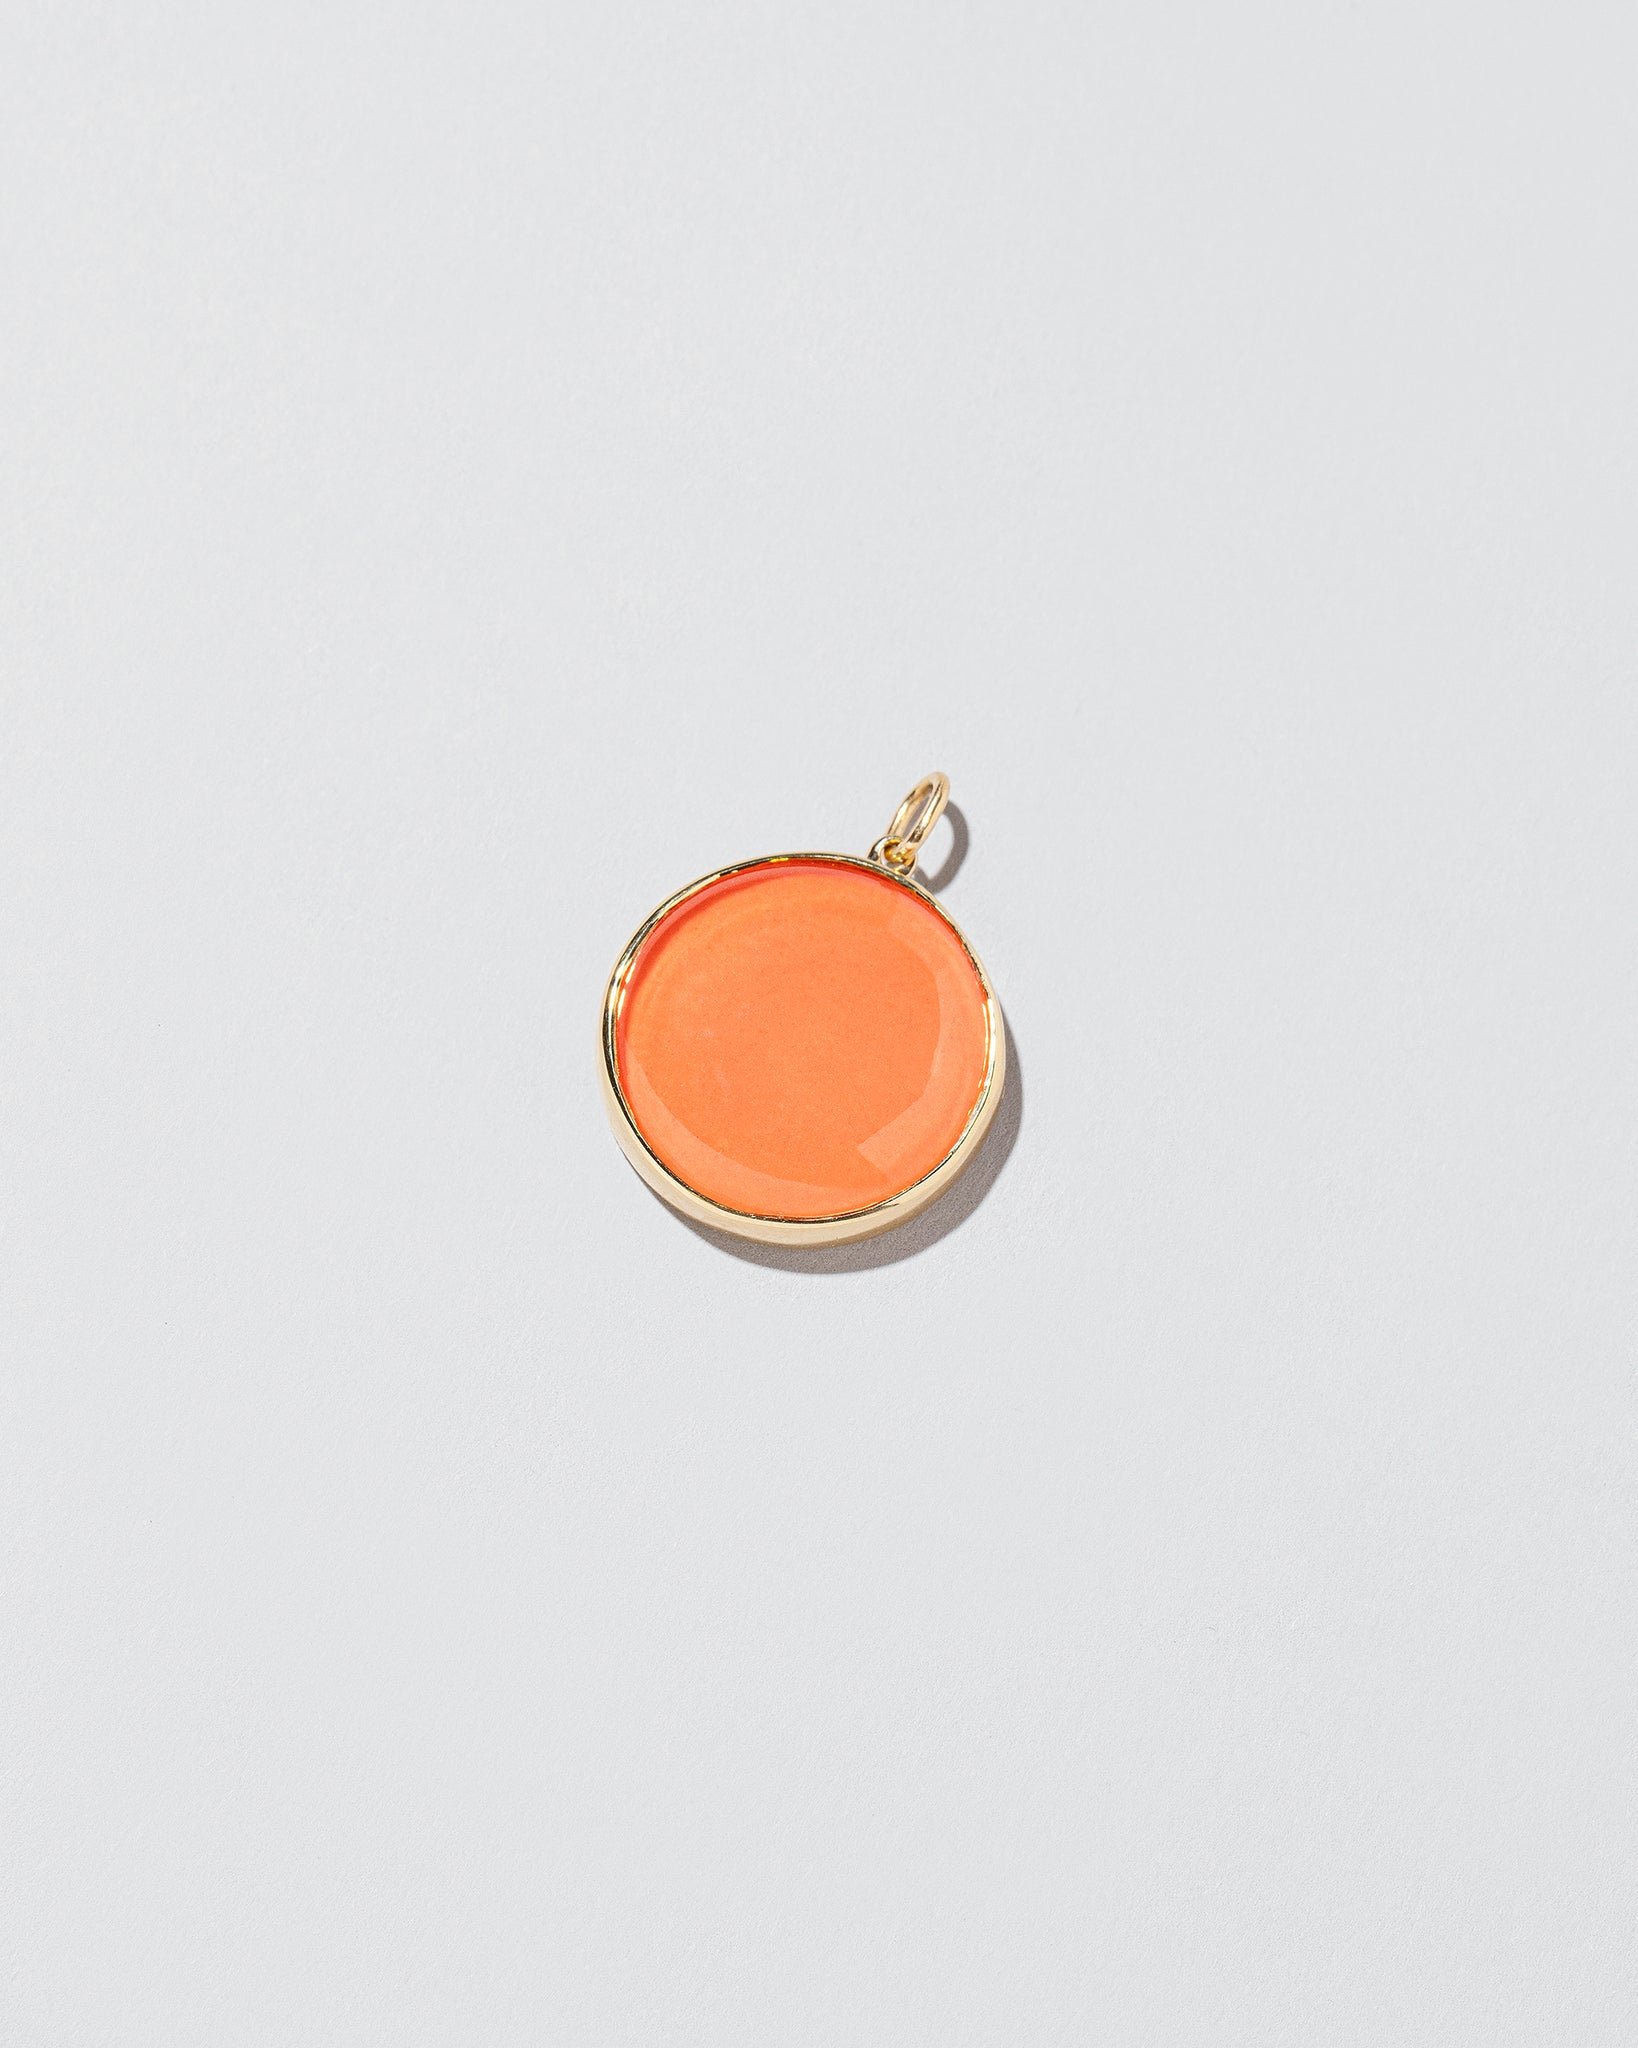 Coral Pendant on light color background